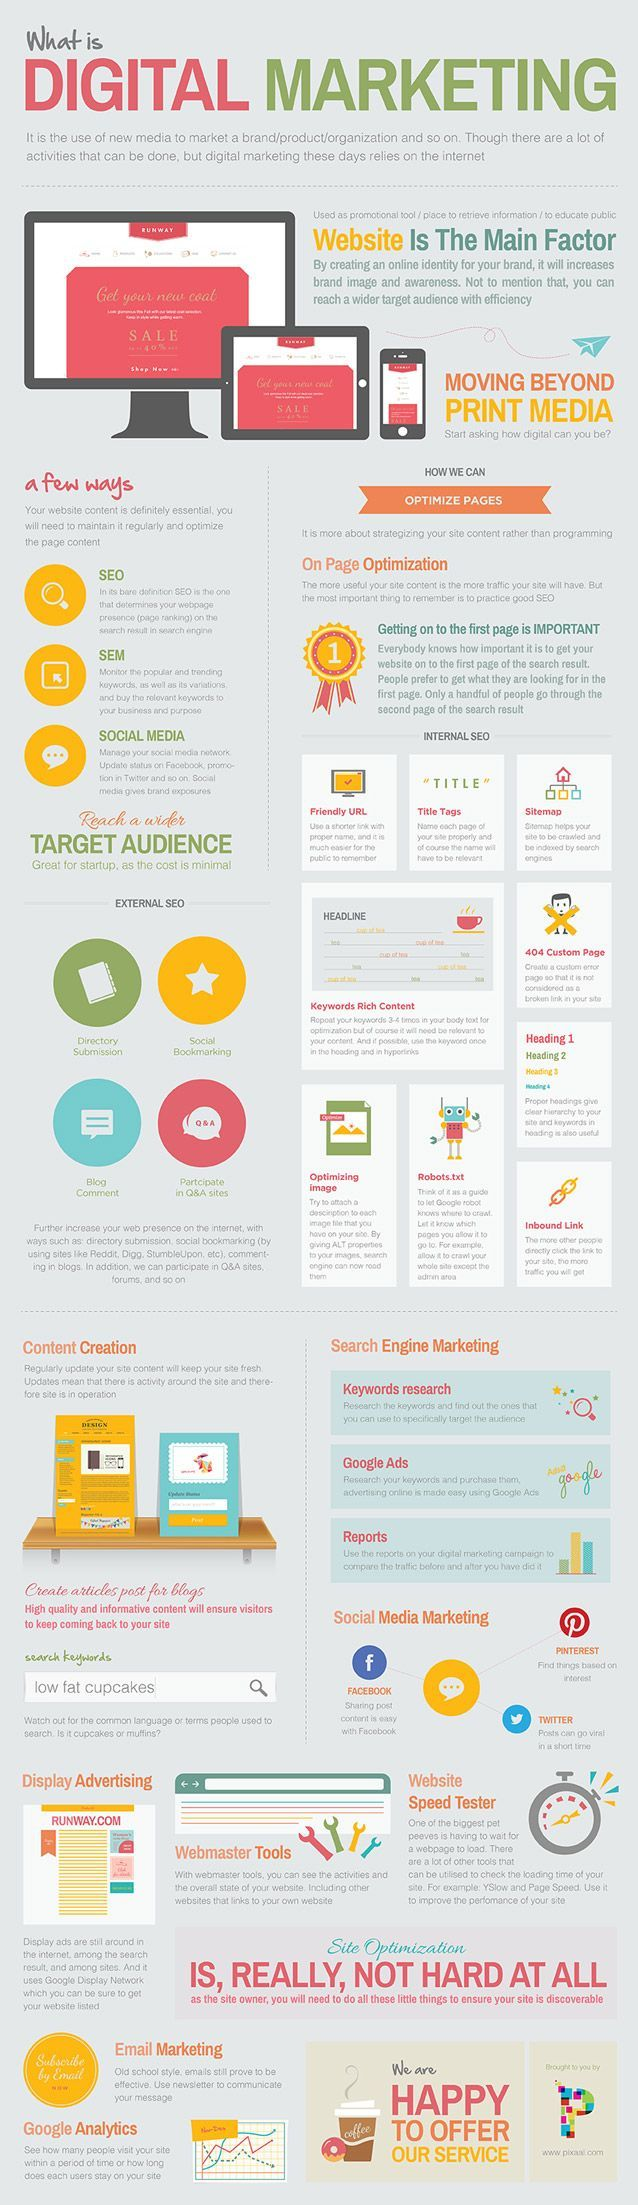 What Is Digital Marketing: How To Increase Brand Visibility   www.digitalinformationworld.com/2013/07/What-Is-Digital-Marketing-How-To-Increase-Brand-Visibility.html